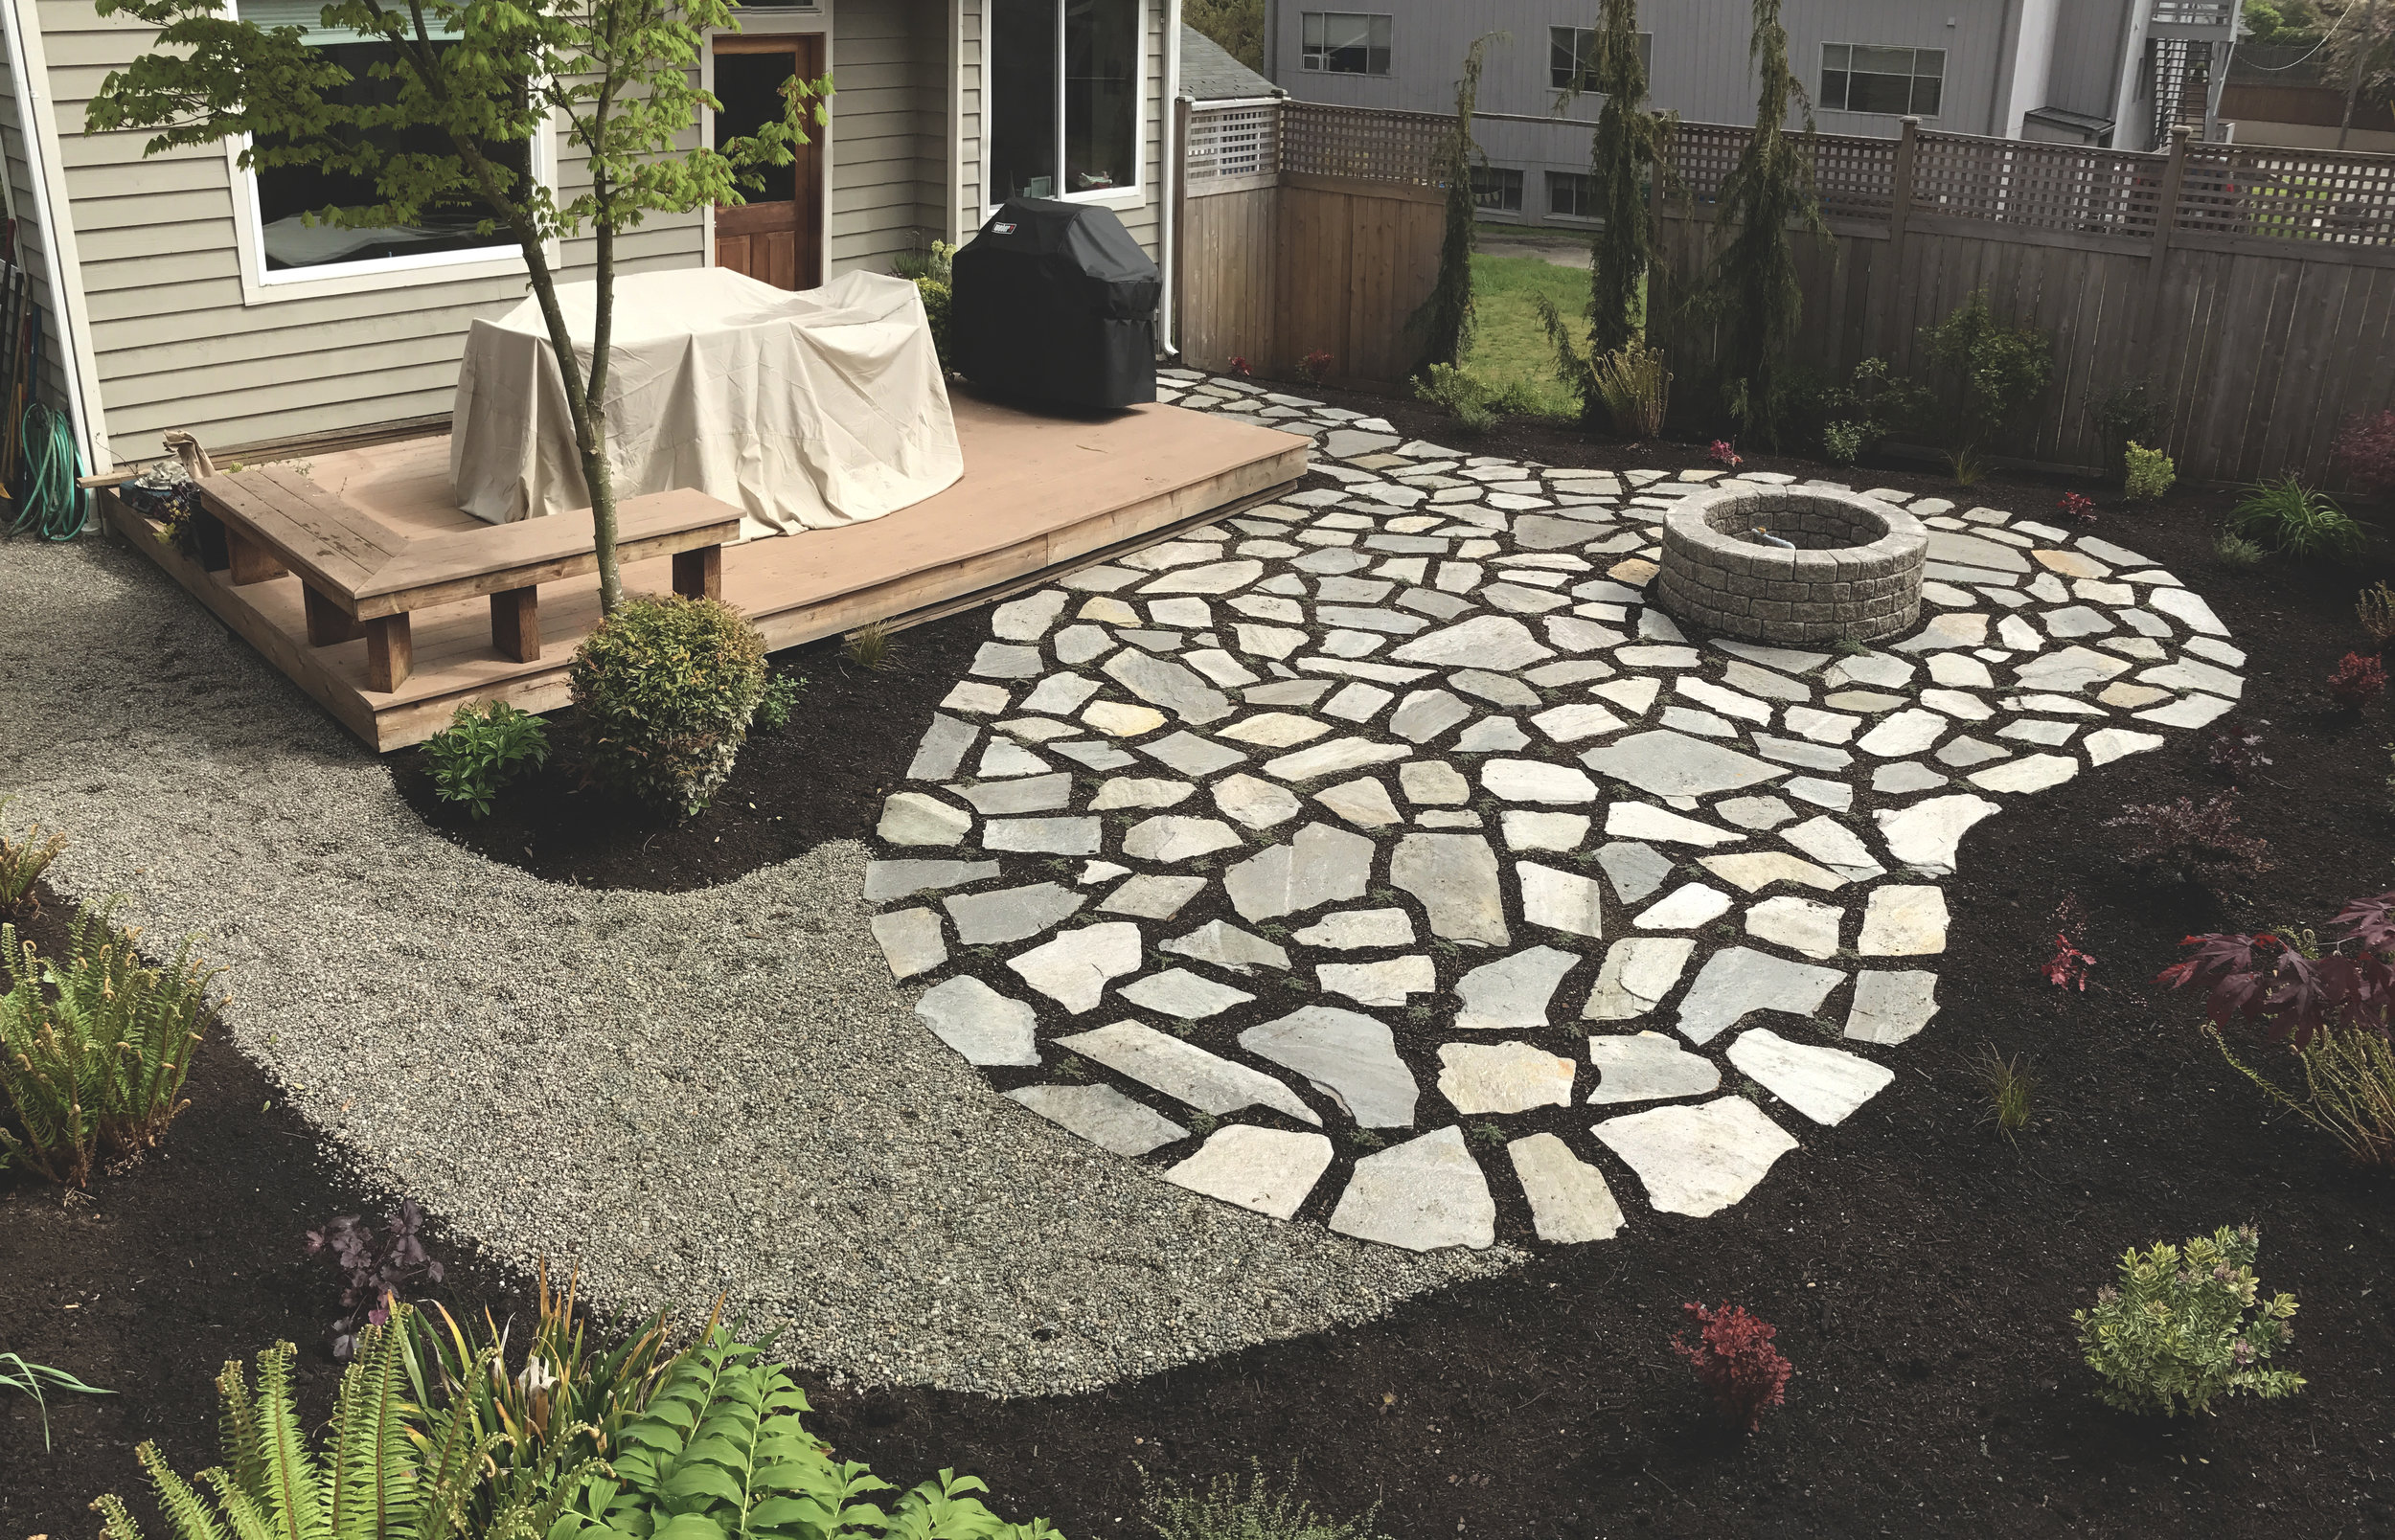 Kidney bean natural stone patio  (Built with Cowboy Coffee flagstone)